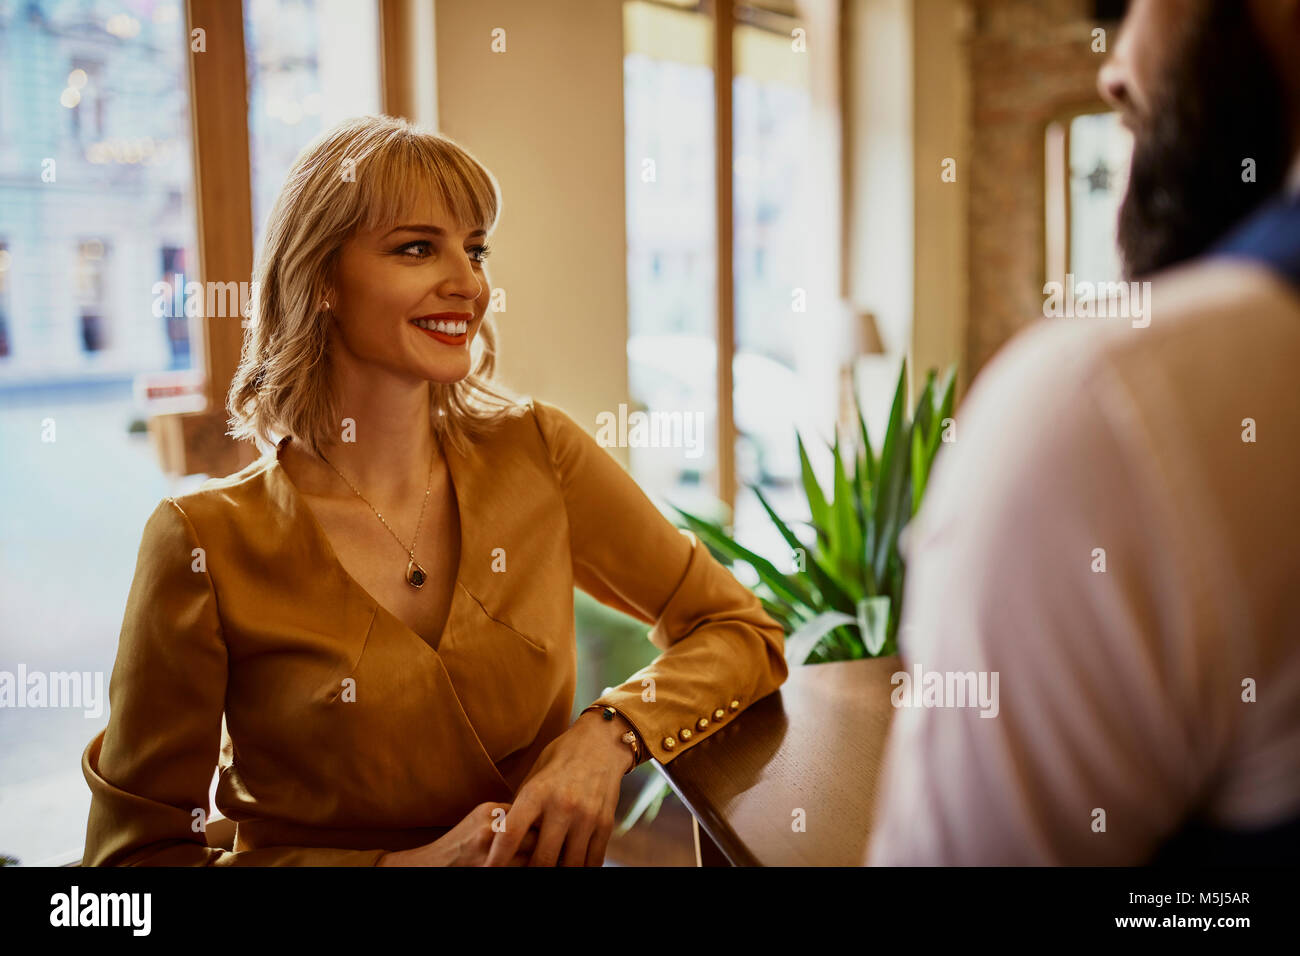 Elegant smiling woman with man in a bar - Stock Image